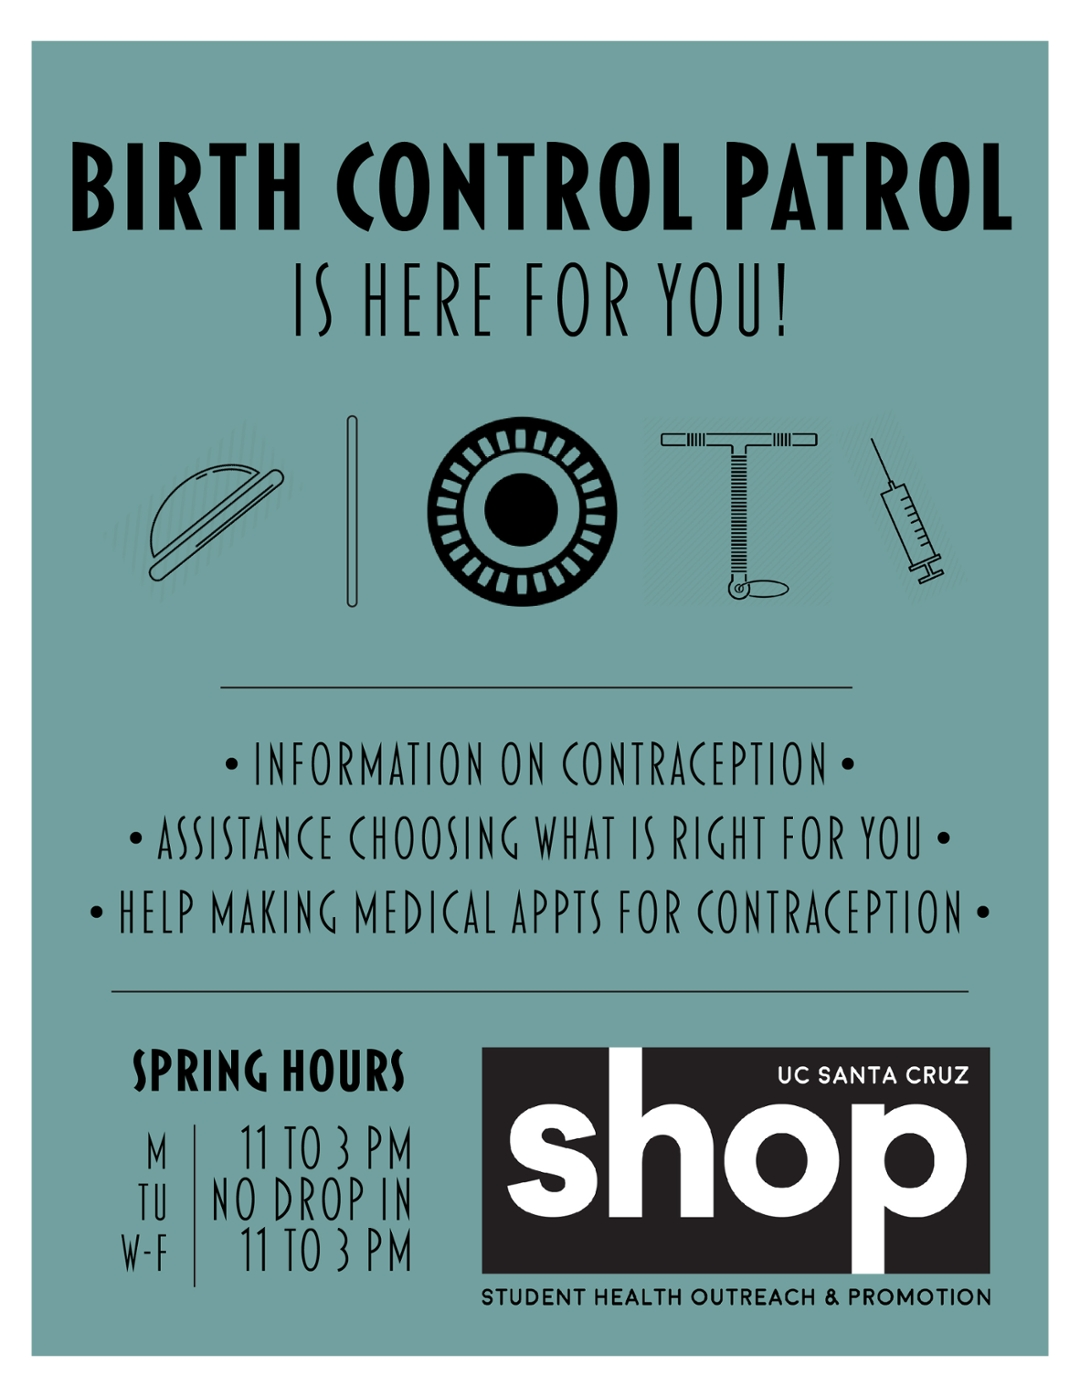 Birth Control Patrol winter hours